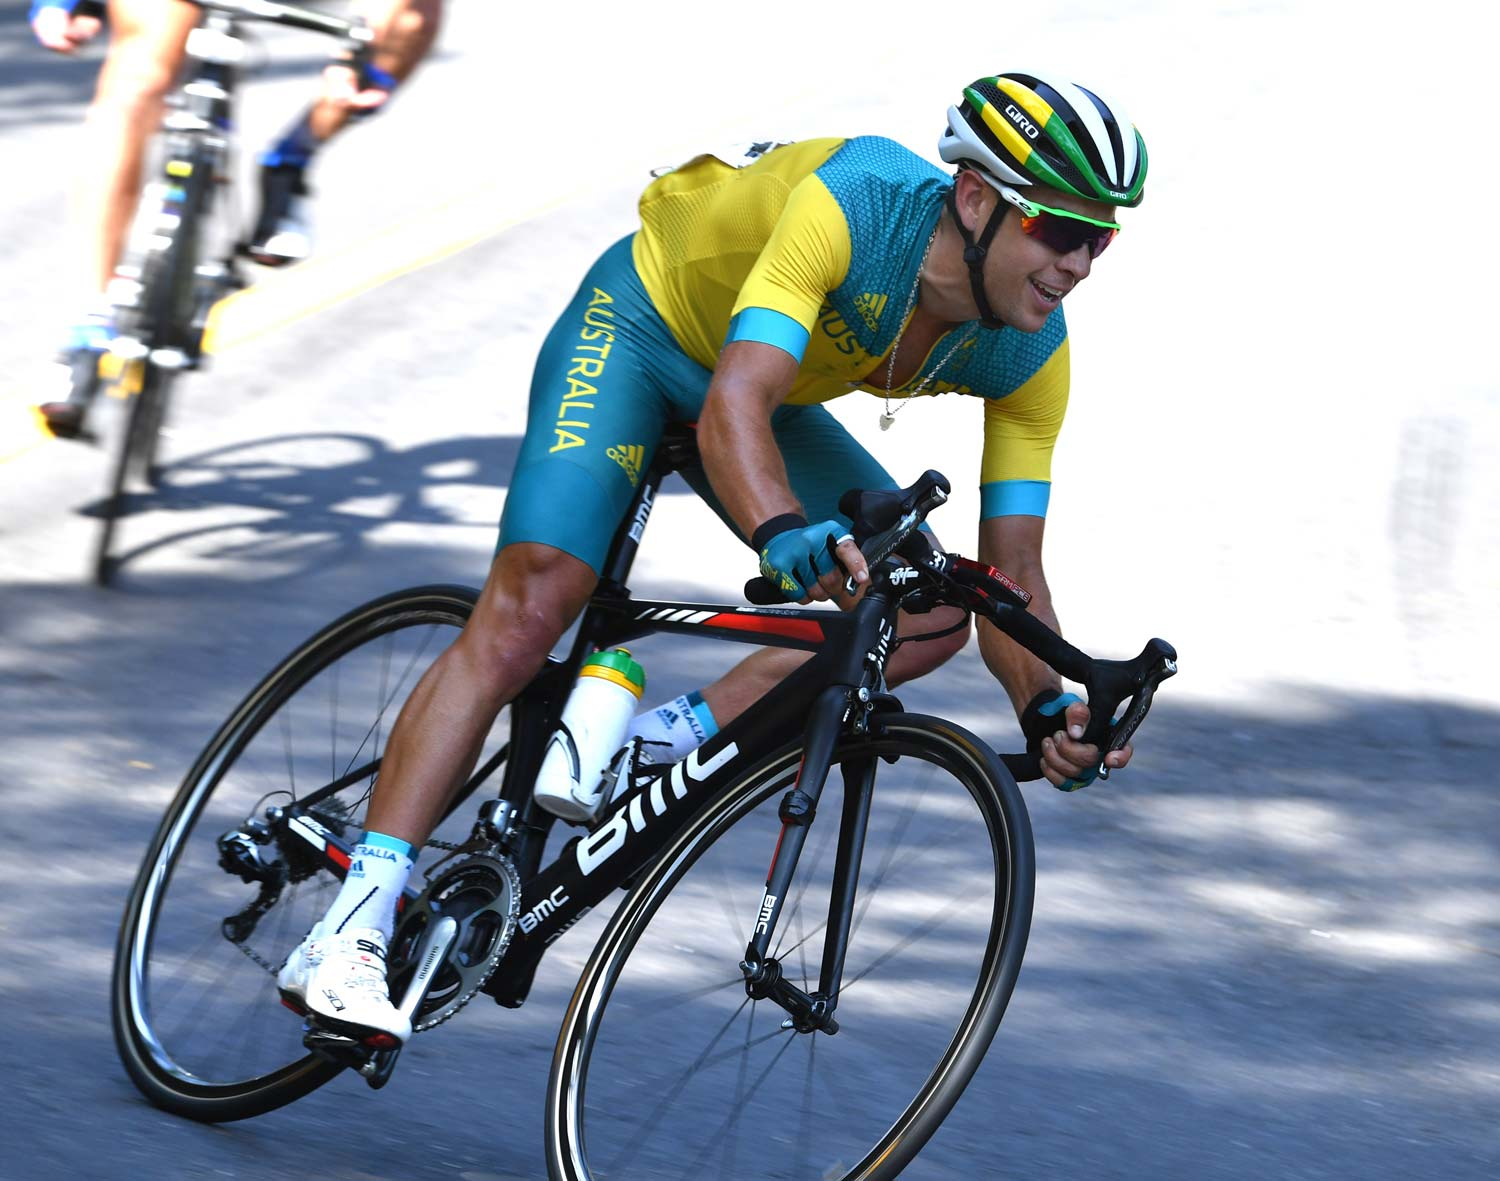 'National duties'... Richie Porte in the road race in Rio. Photo: Graham Watson